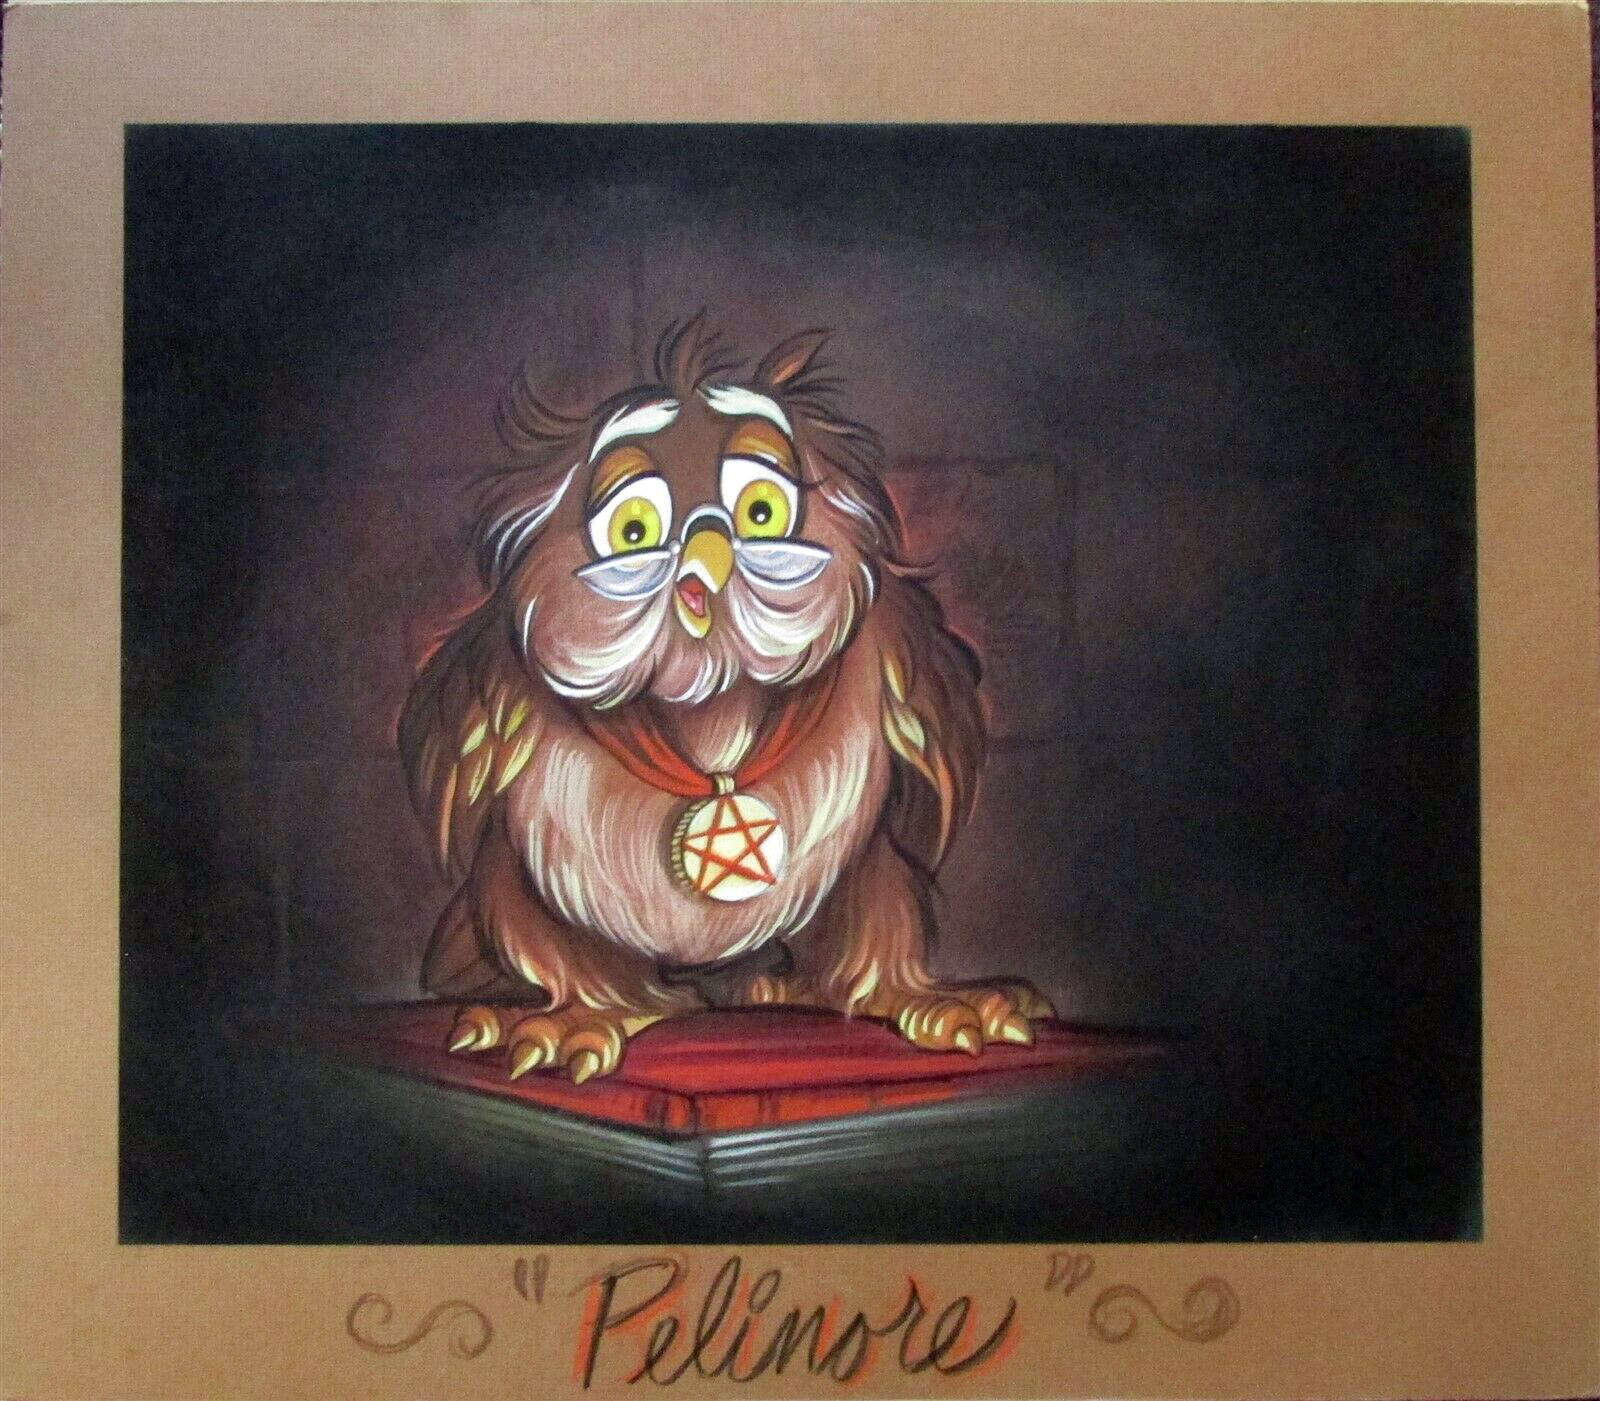 Pellinore character design, painting by Rebecca Mills